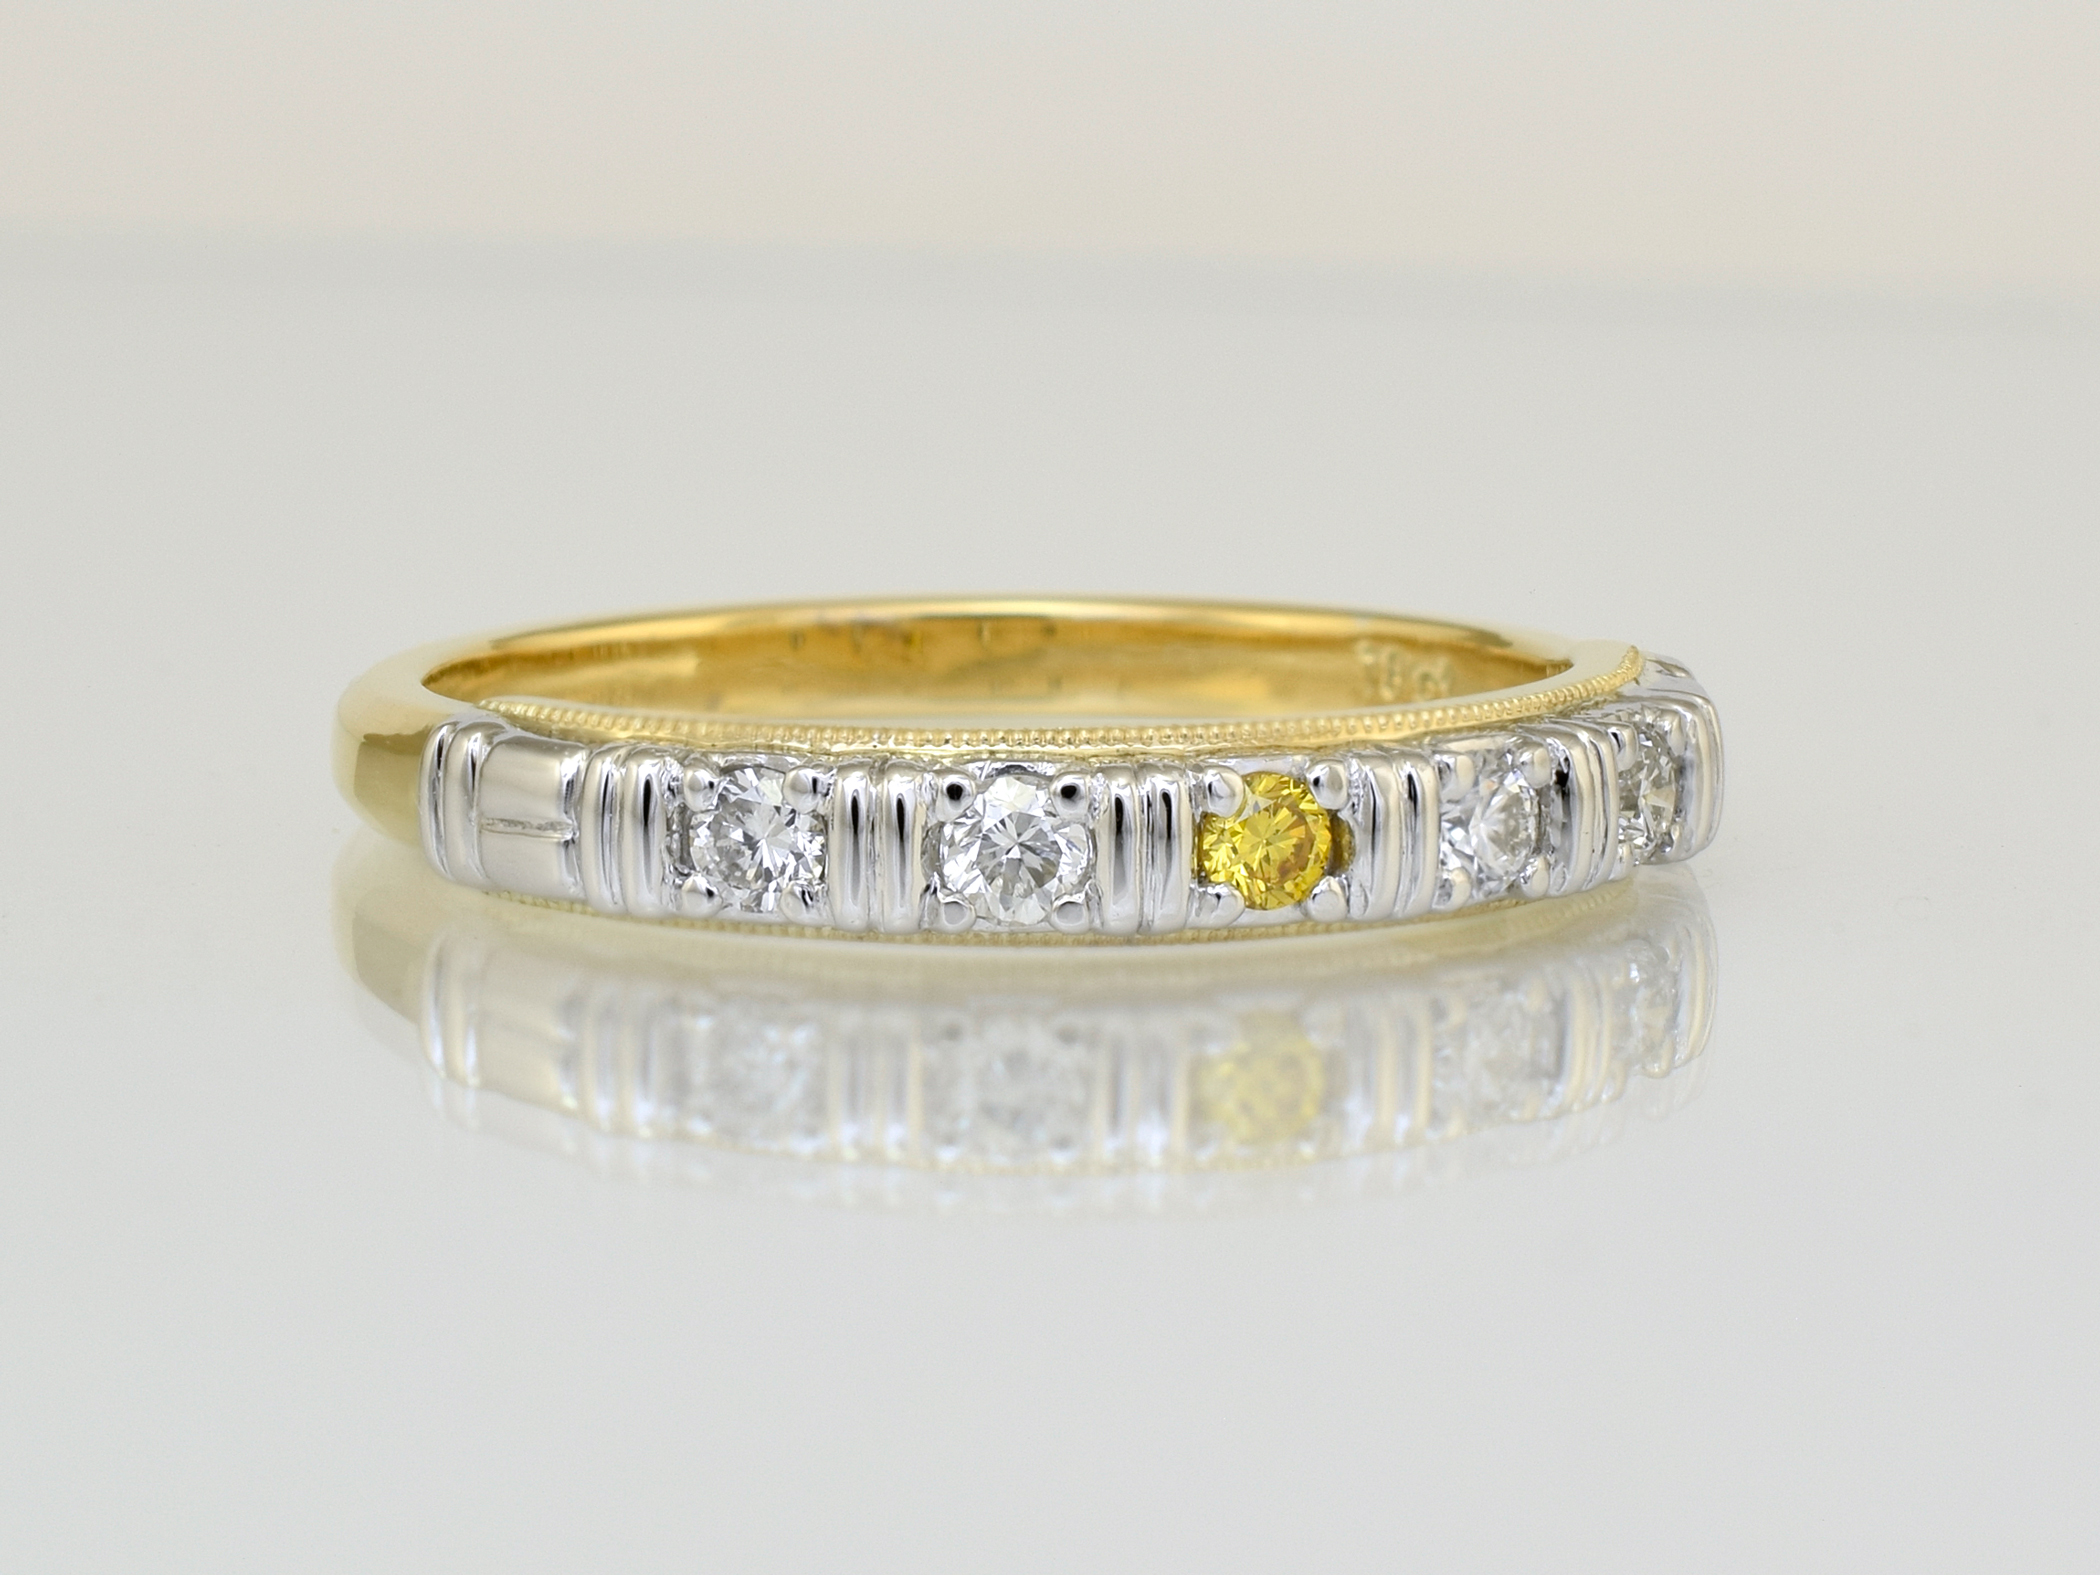 Centre yellow diamond created from the father`s carbon.